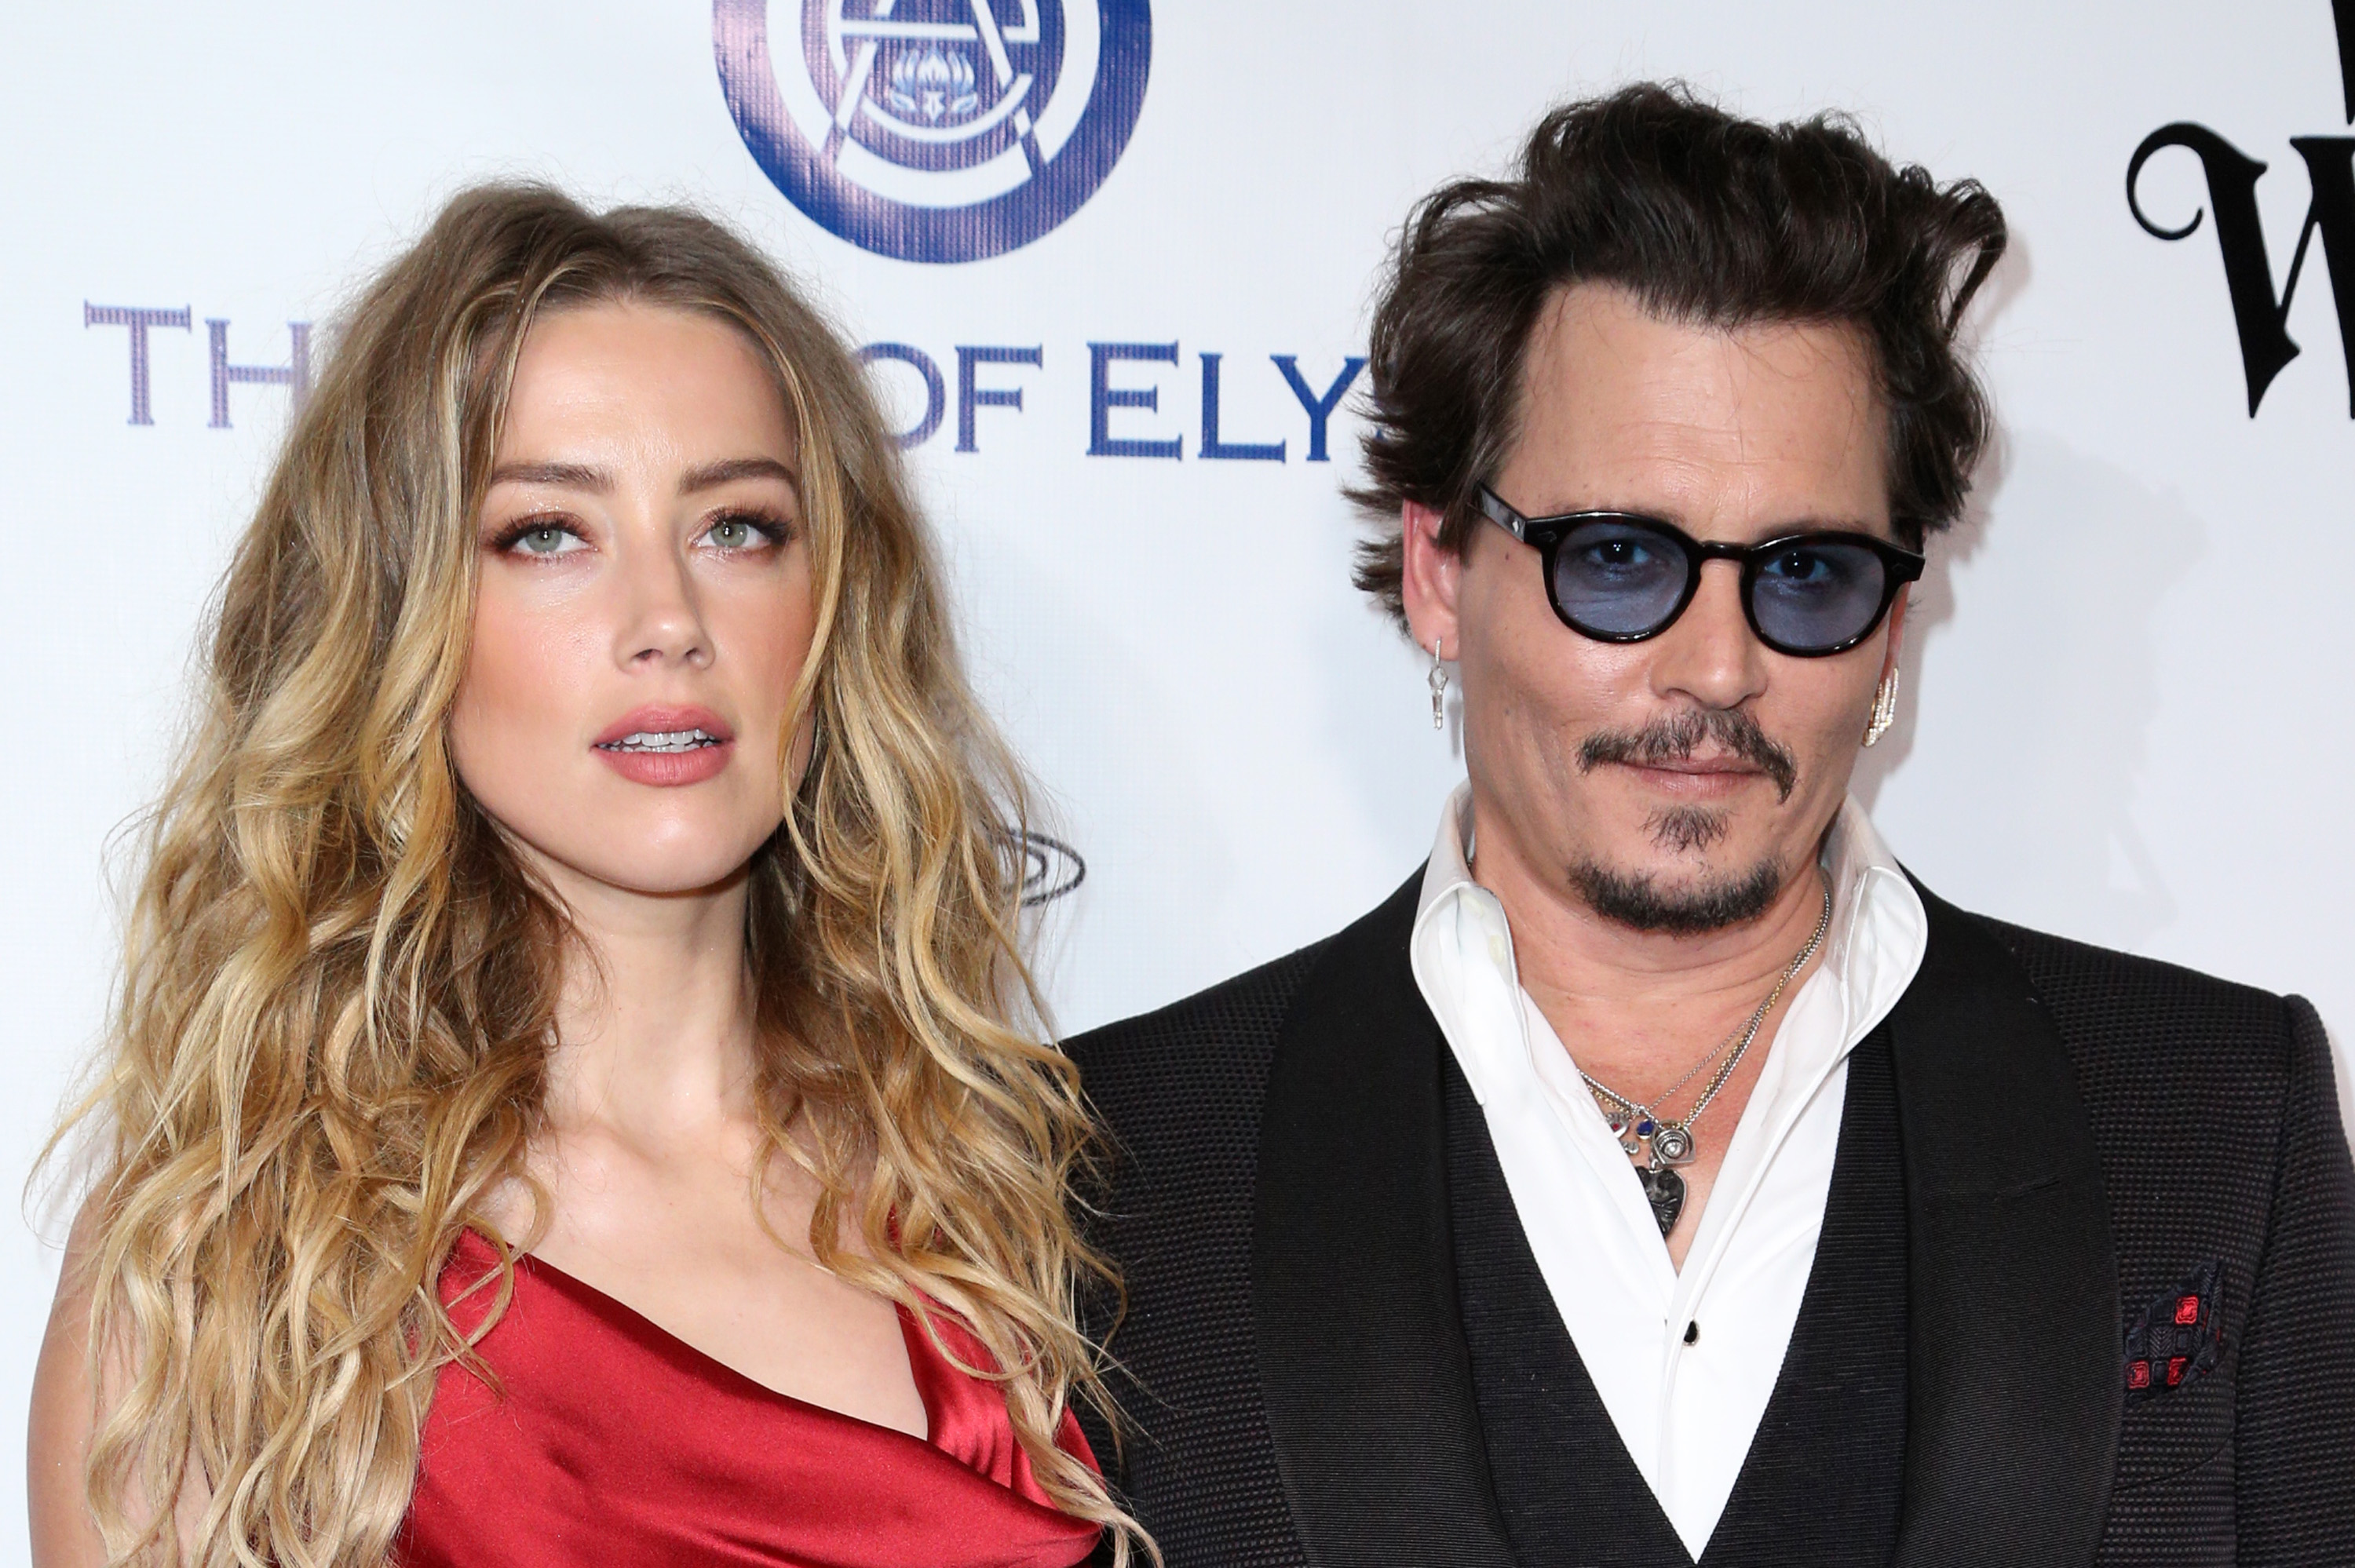 Amber Heard, left, and Johnny Depp arrive at The Art of Elysium's Ninth annual Heaven Gala at 3LABS, in Culver City, CalifThe Art of Elysium's Ninth Annual Heaven Gala, Culver City, USA